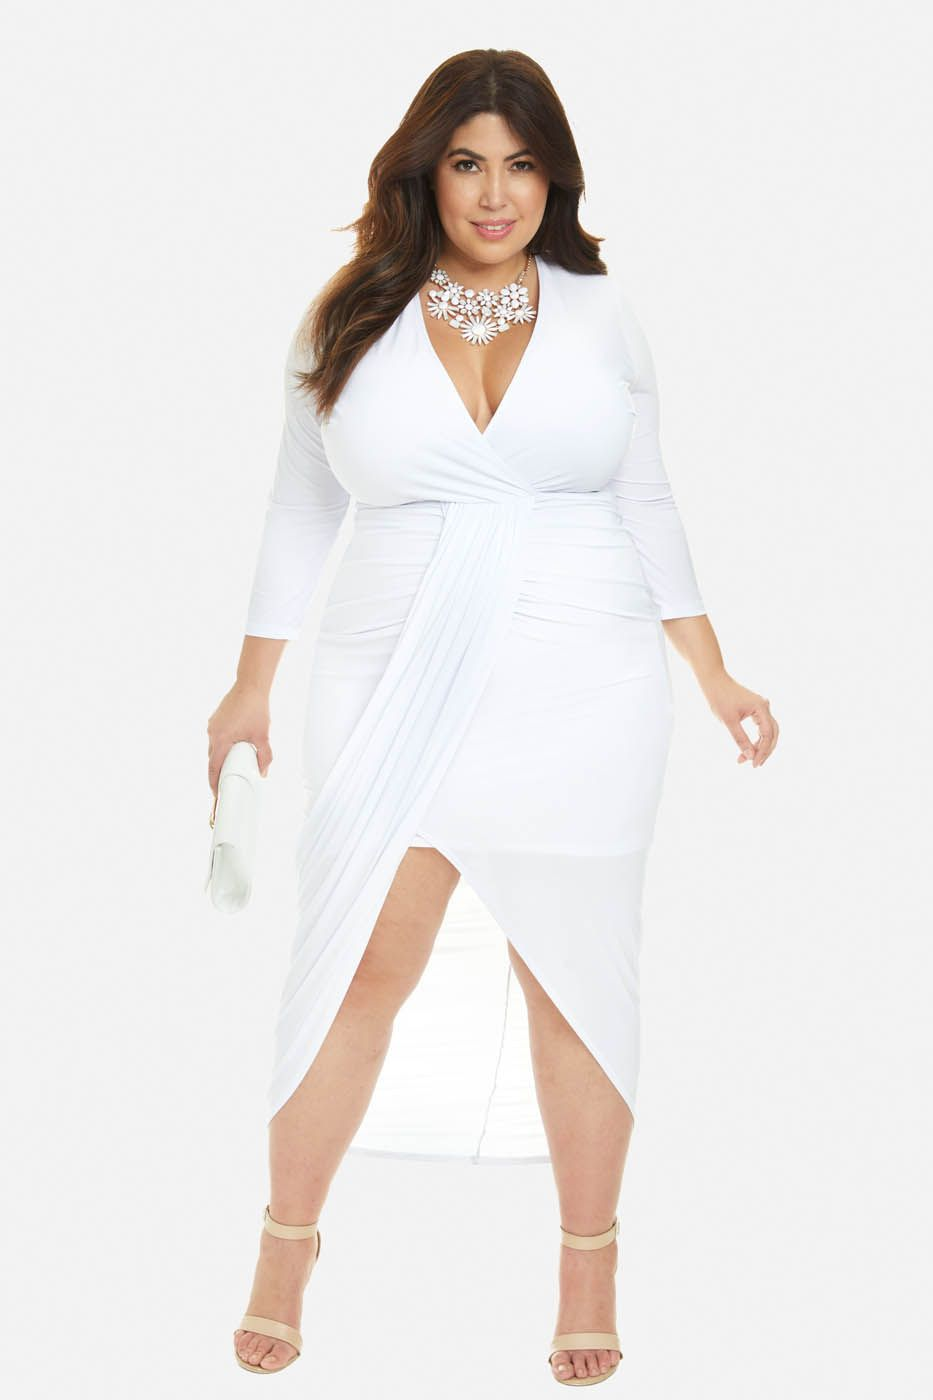 Plus Size Helena Draped Maxi Dress | Plus size in 2019 ...